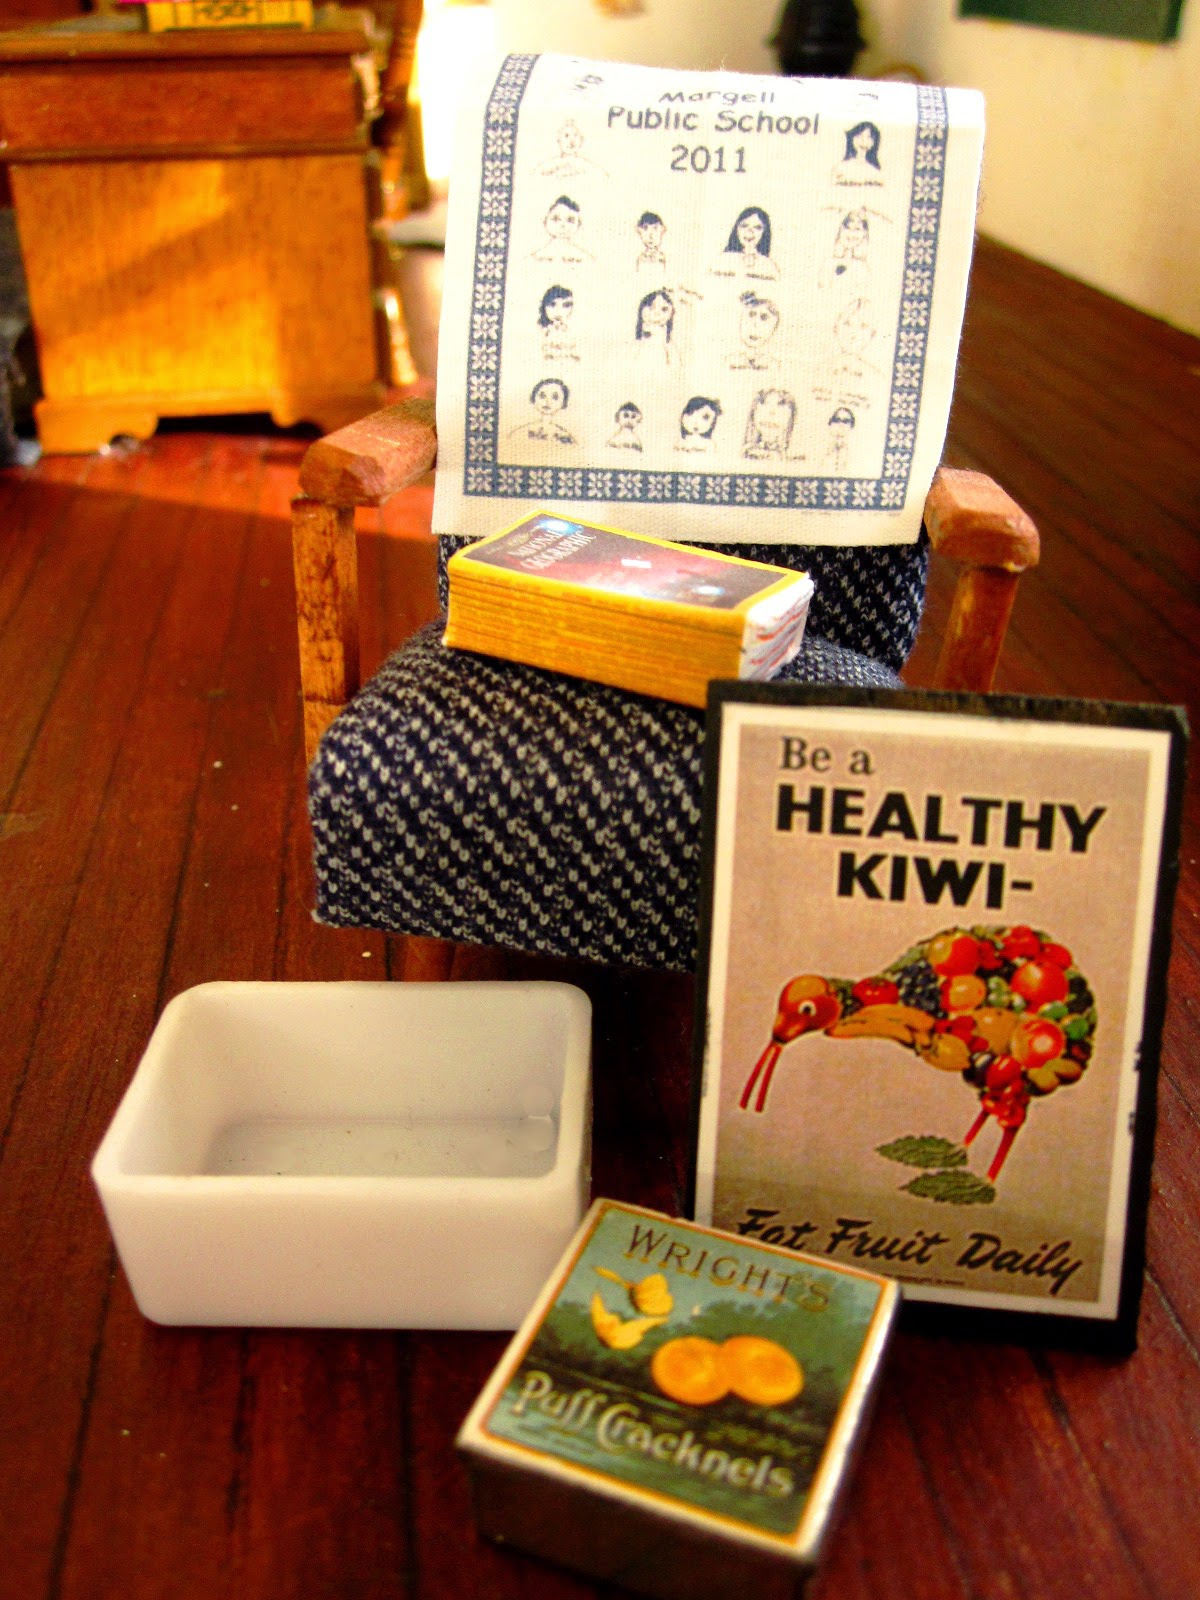 Collection of miniature items including a 1950s-style chair, a tea towel, a stack of old National Geographic magazines, a white plastic tub, a 'Be a health Kiwi' poster and an old biscuit tin.